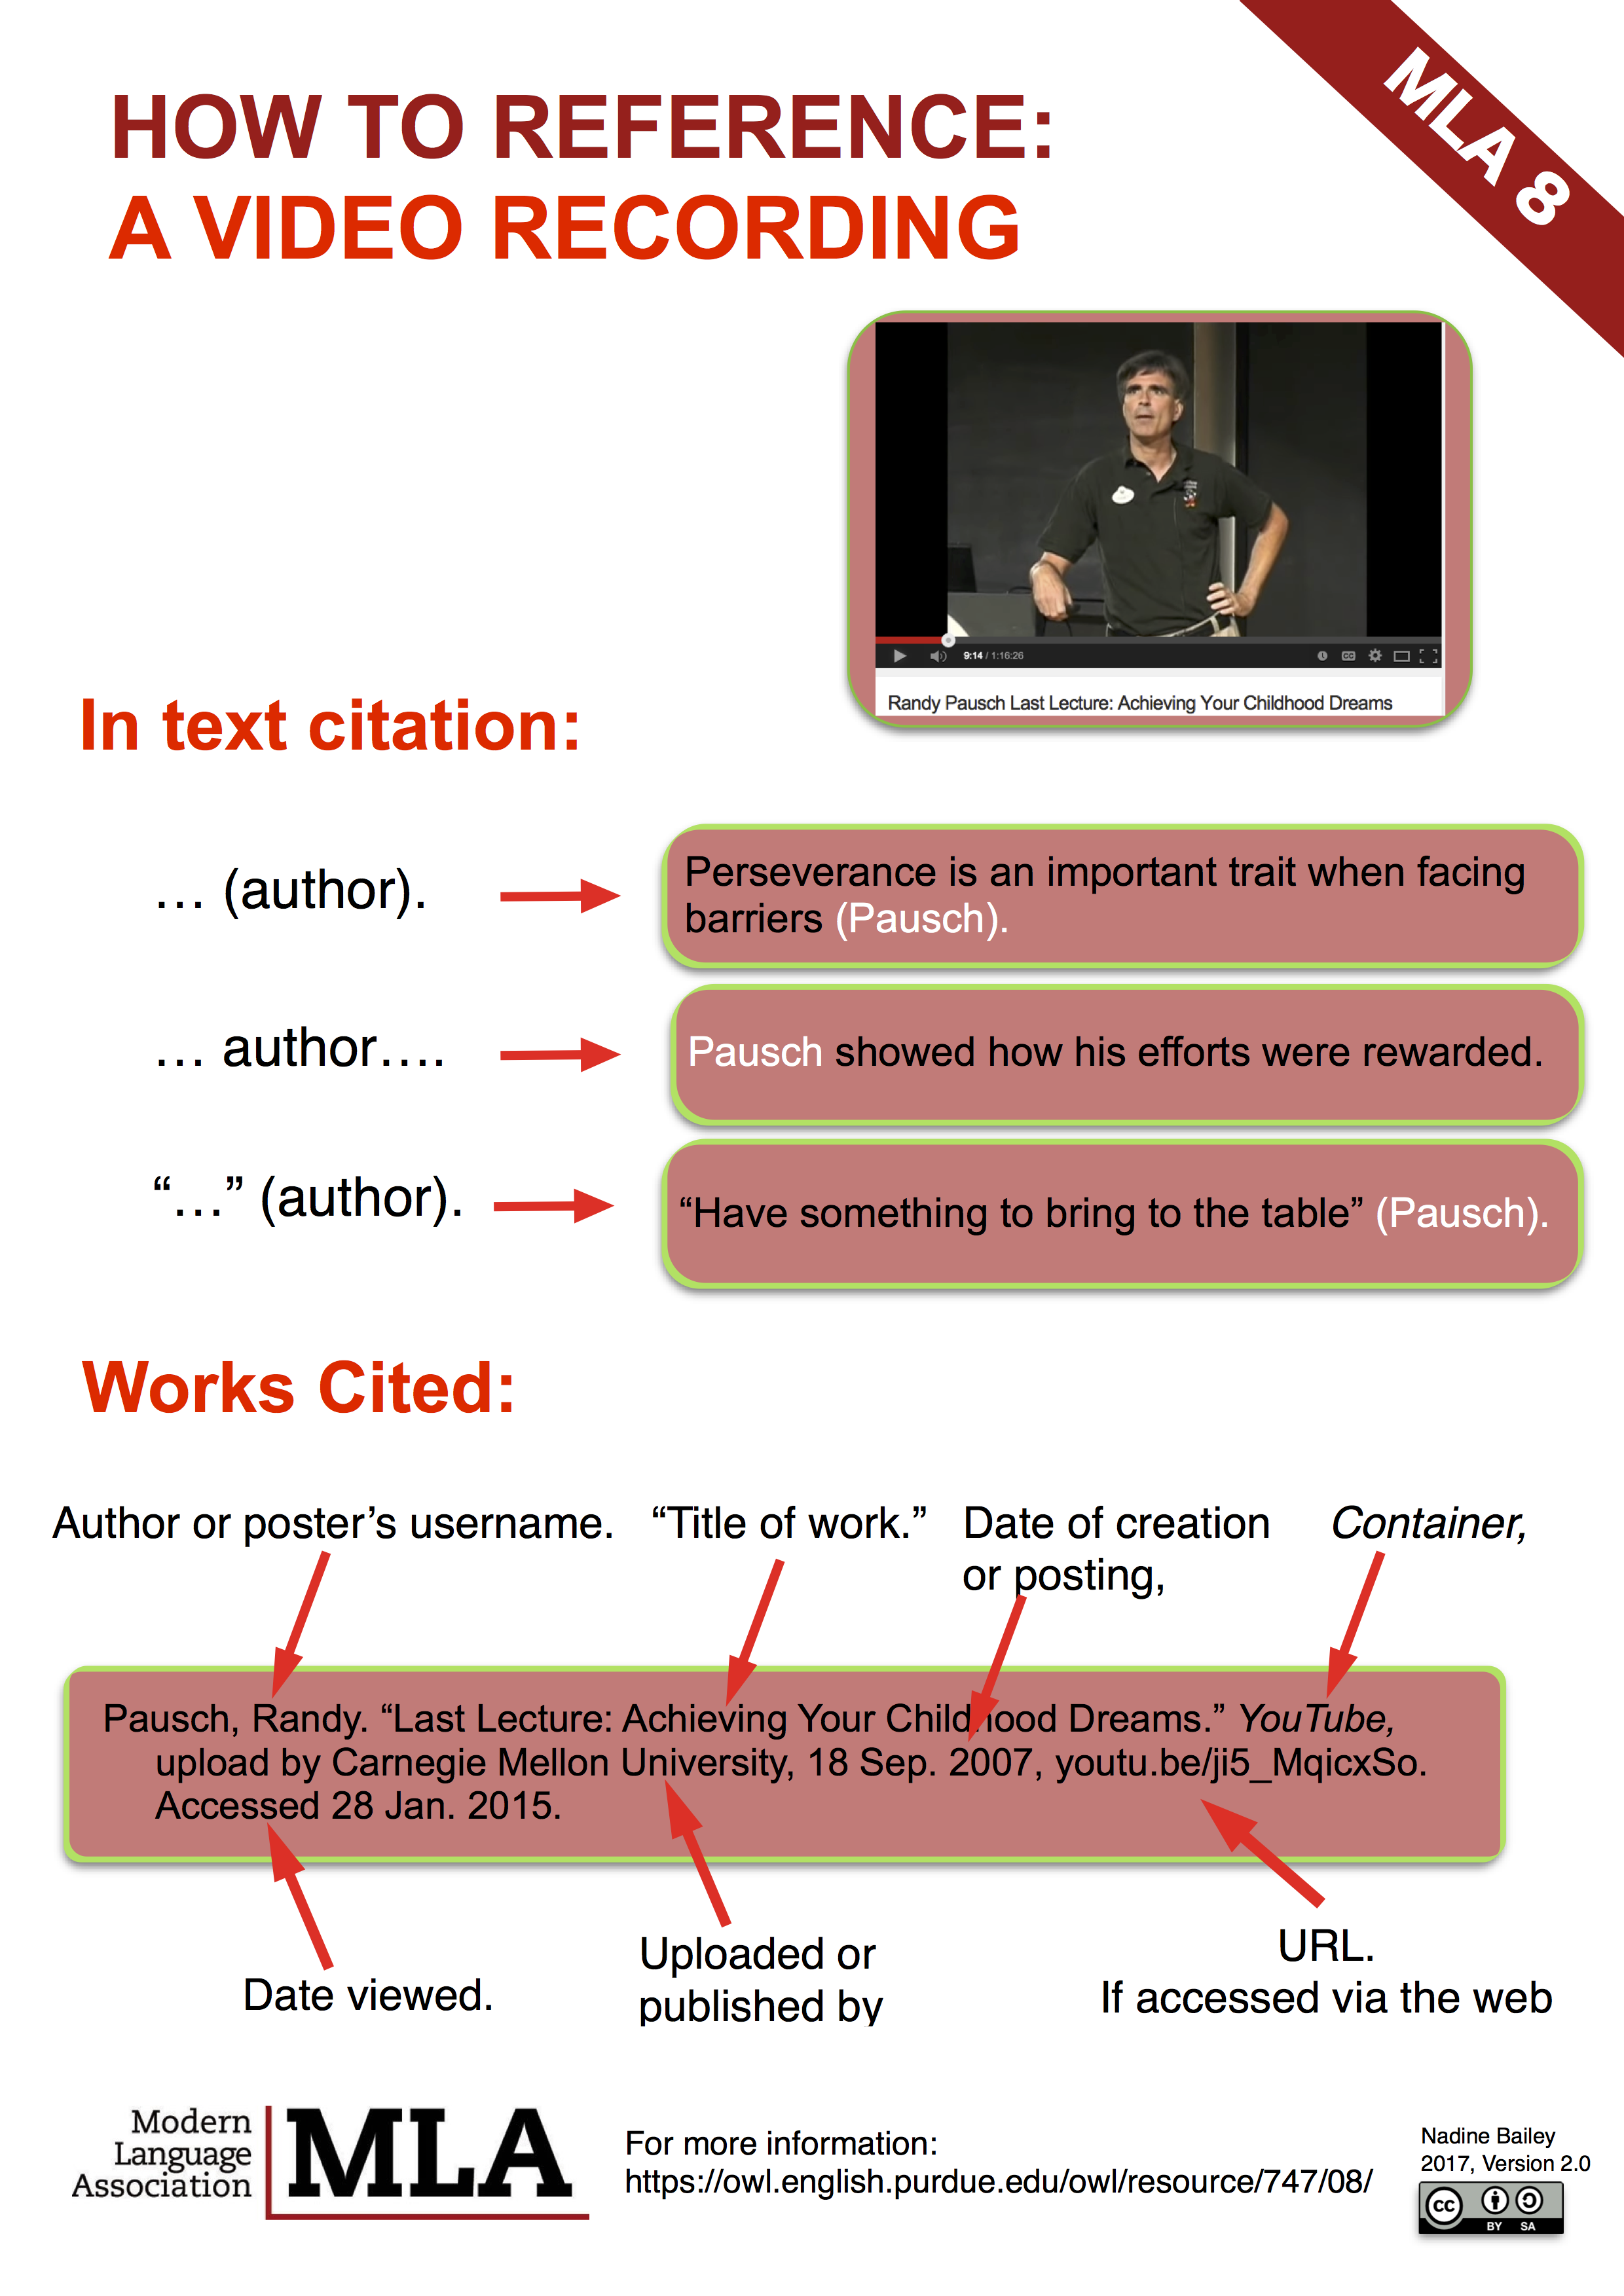 Mla8 Poster Full Guide Libguide At Canadian International School Singapore Academic Writing How To In Text Citation A Website Without Author